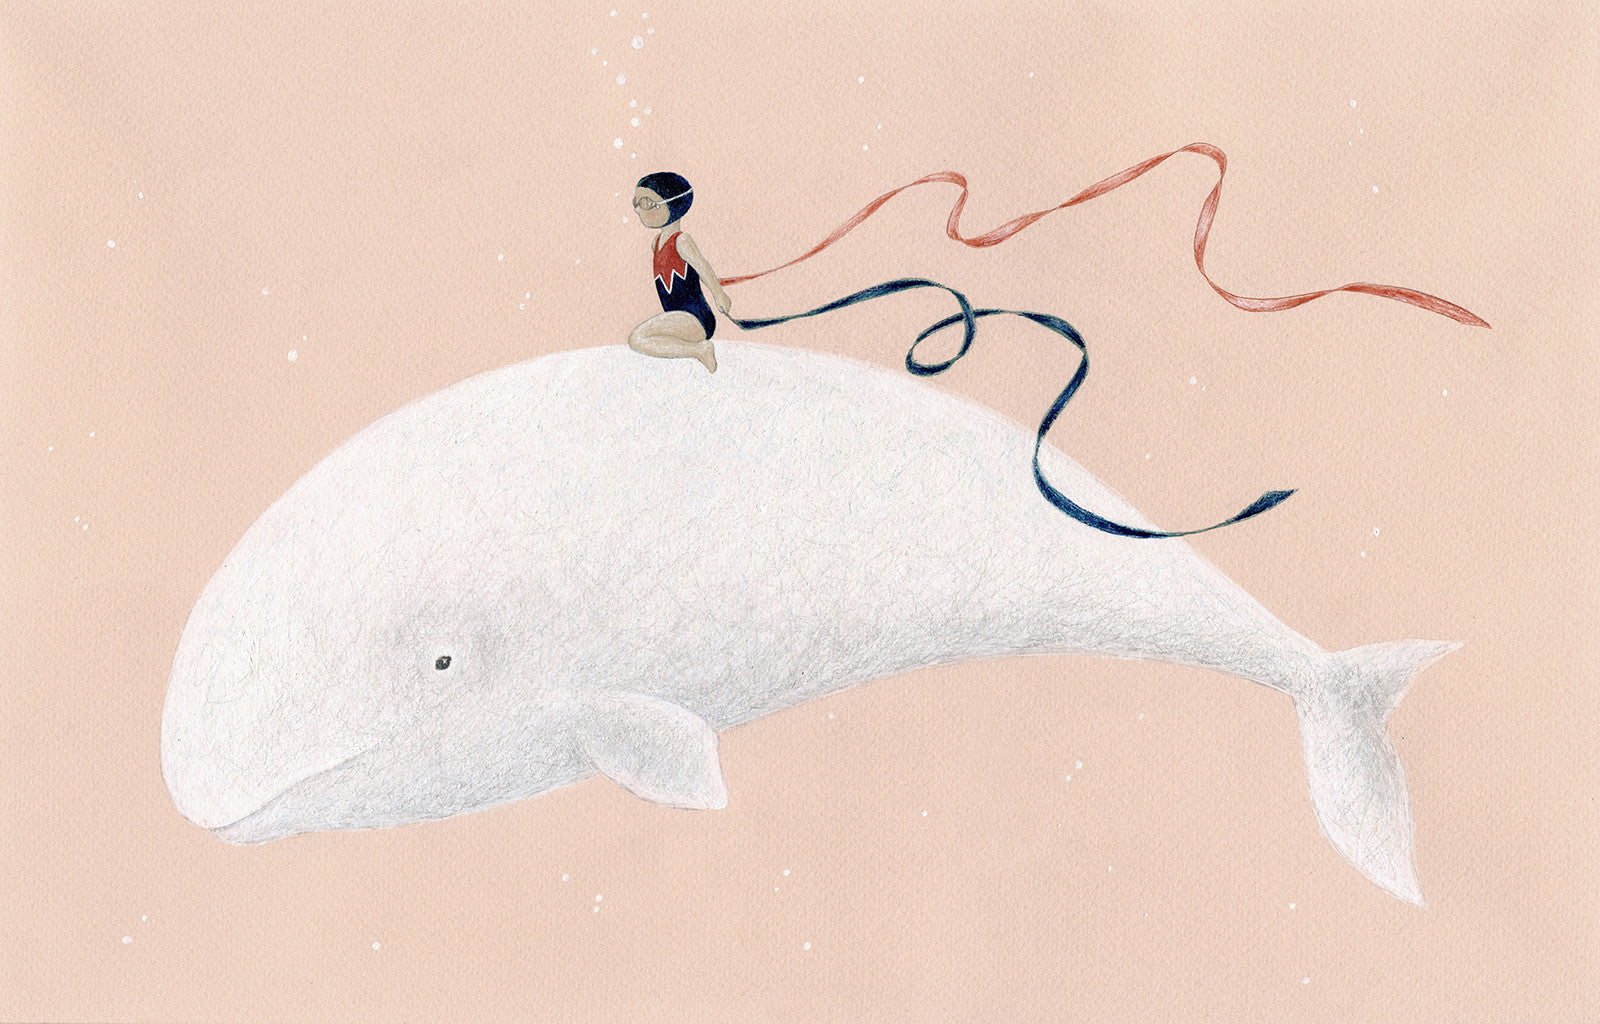 A little girl riding a whale by Jessica Pressman